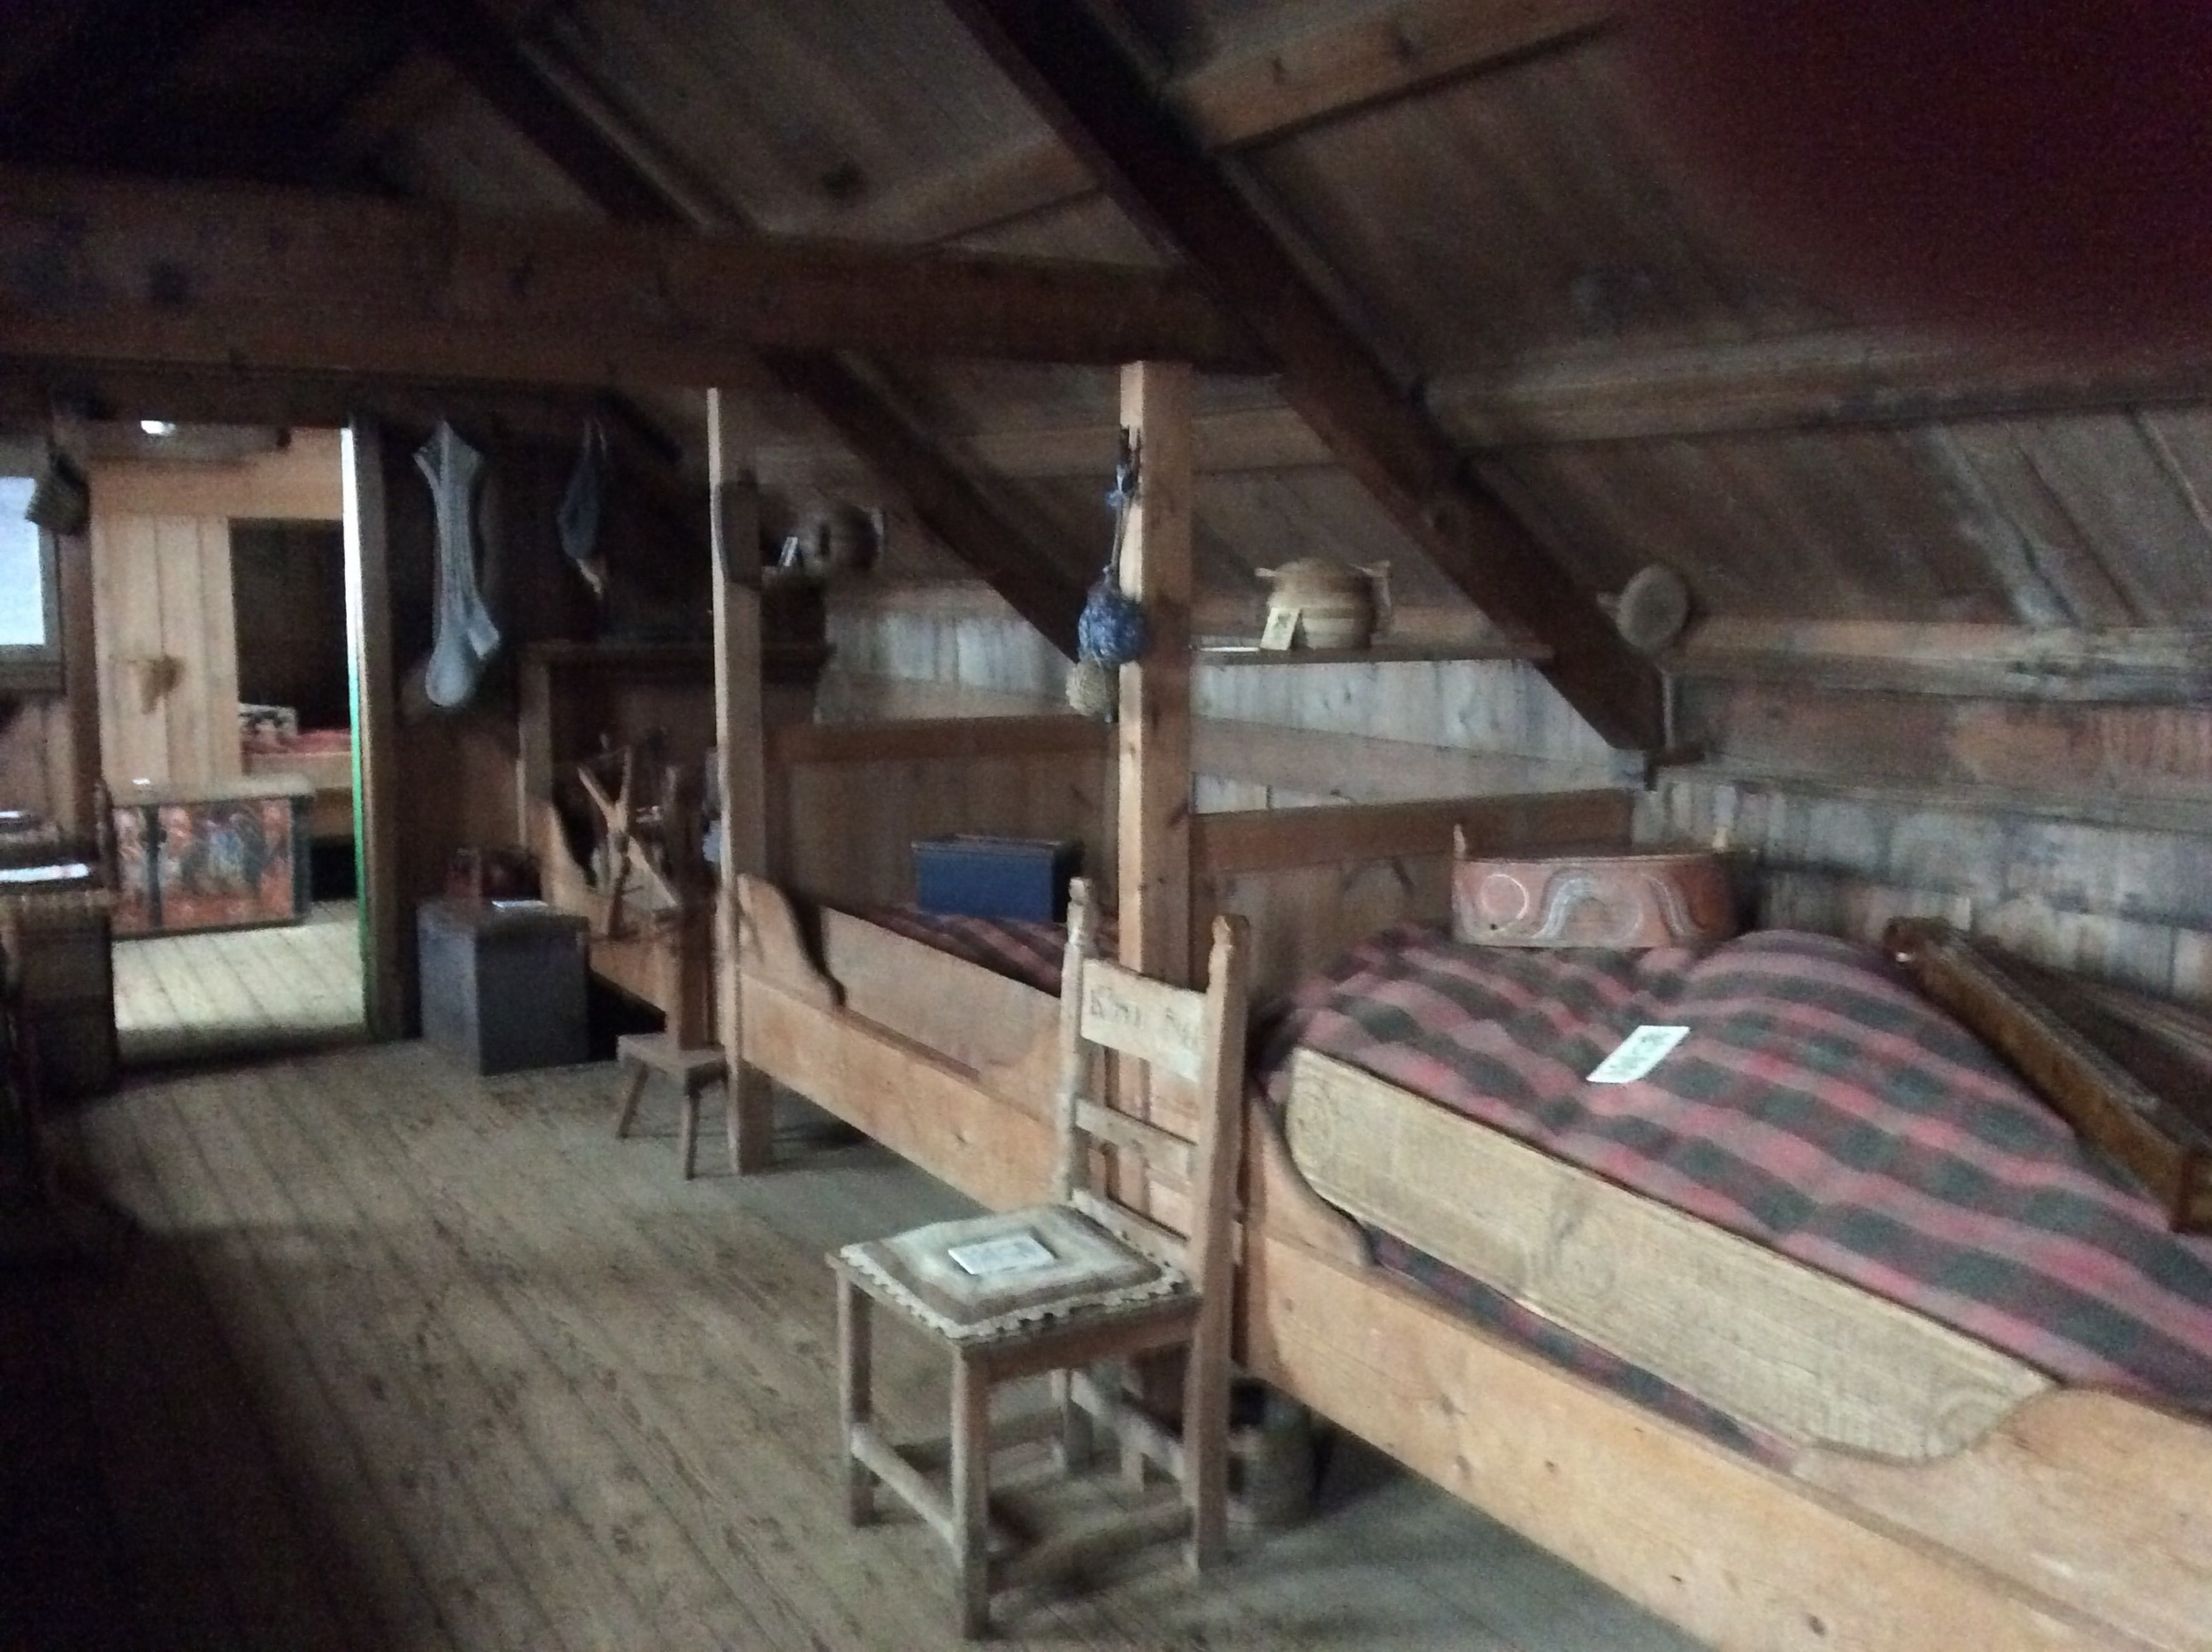 This main room would house/sleep 12 people: 3 beds on each side of the building, and 2 to a bed. The women lived on the side with the windows, because, as tiny as they were, they needed the light for their finer hand work.